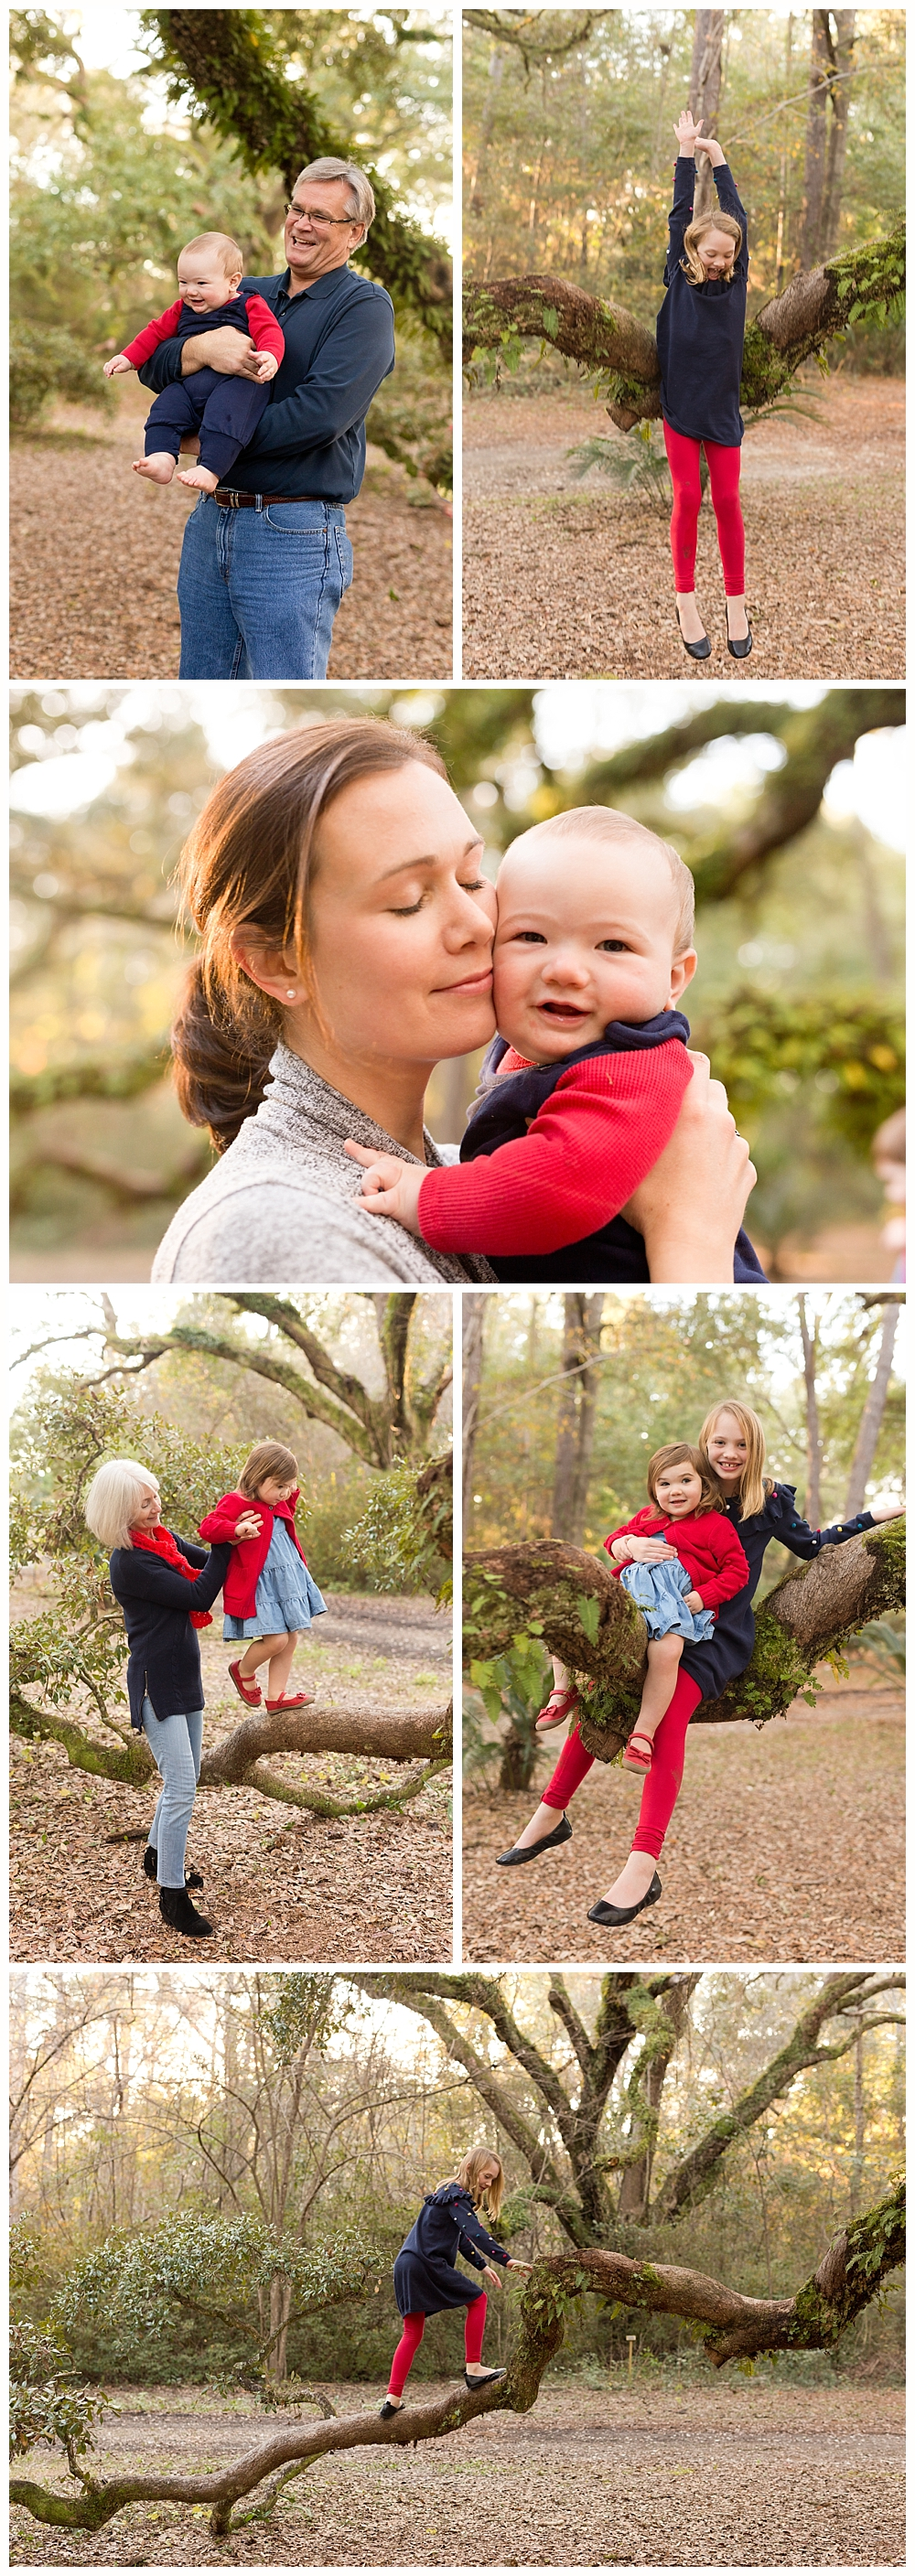 lifestyle family photos in Ocean Springs, MS - photos of family and kids climbing trees